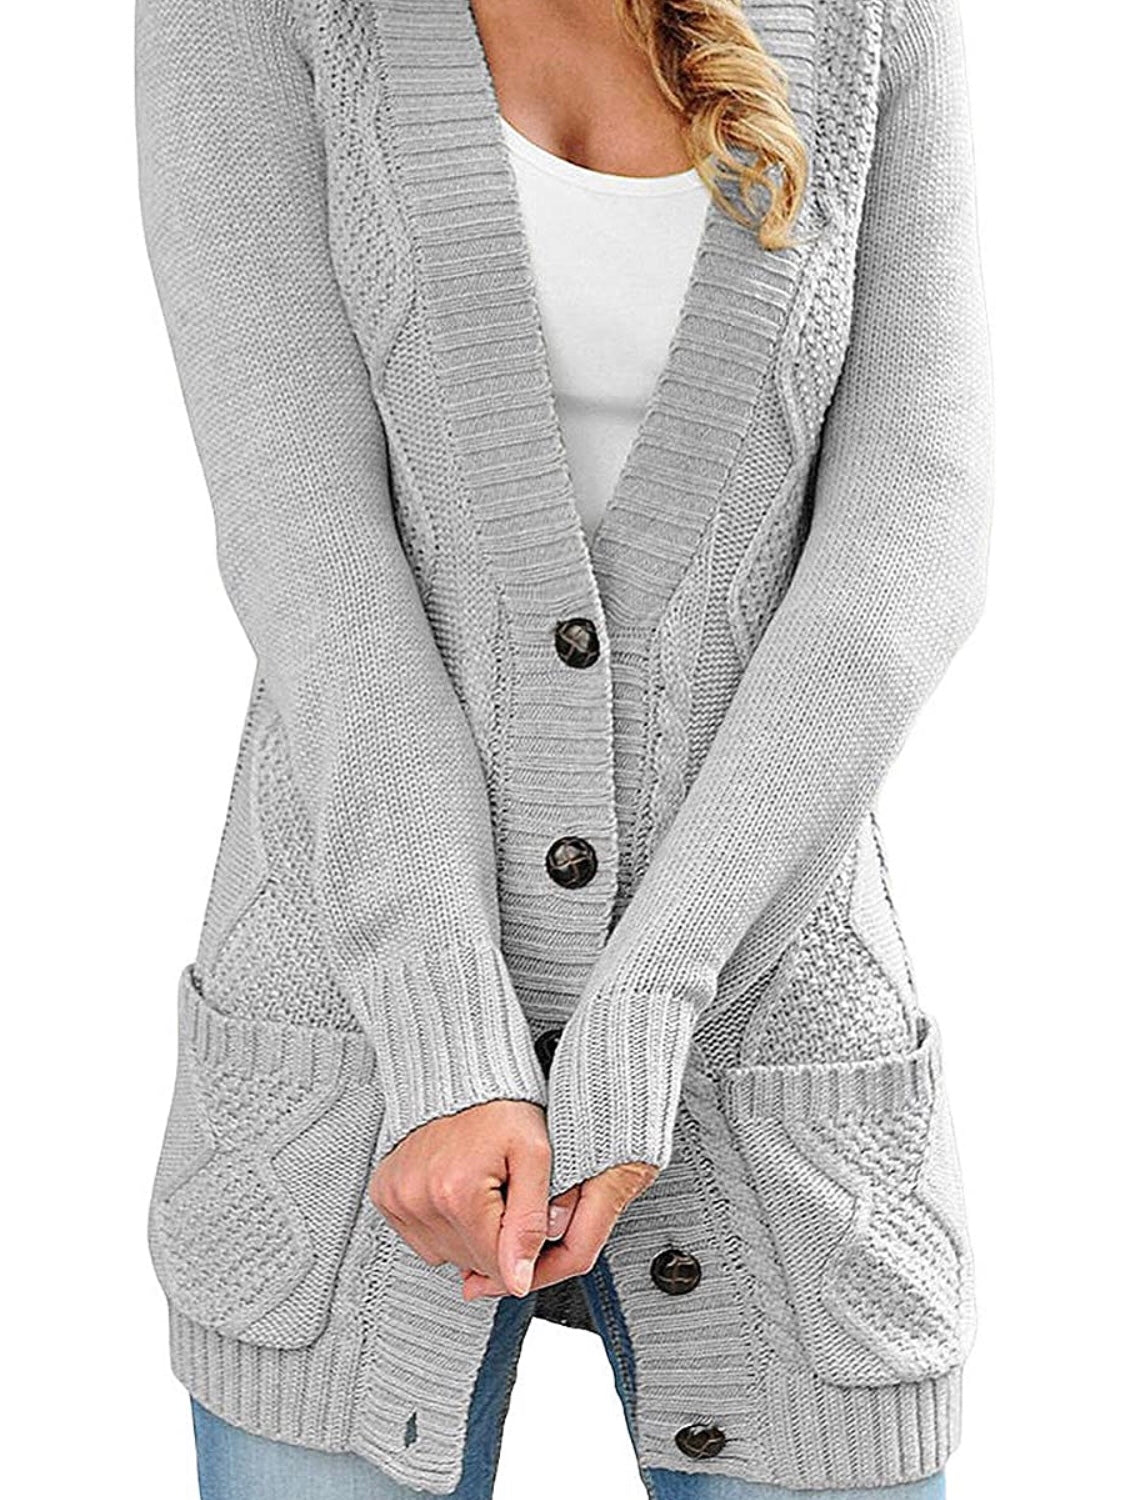 Gray Cardigan Sweater